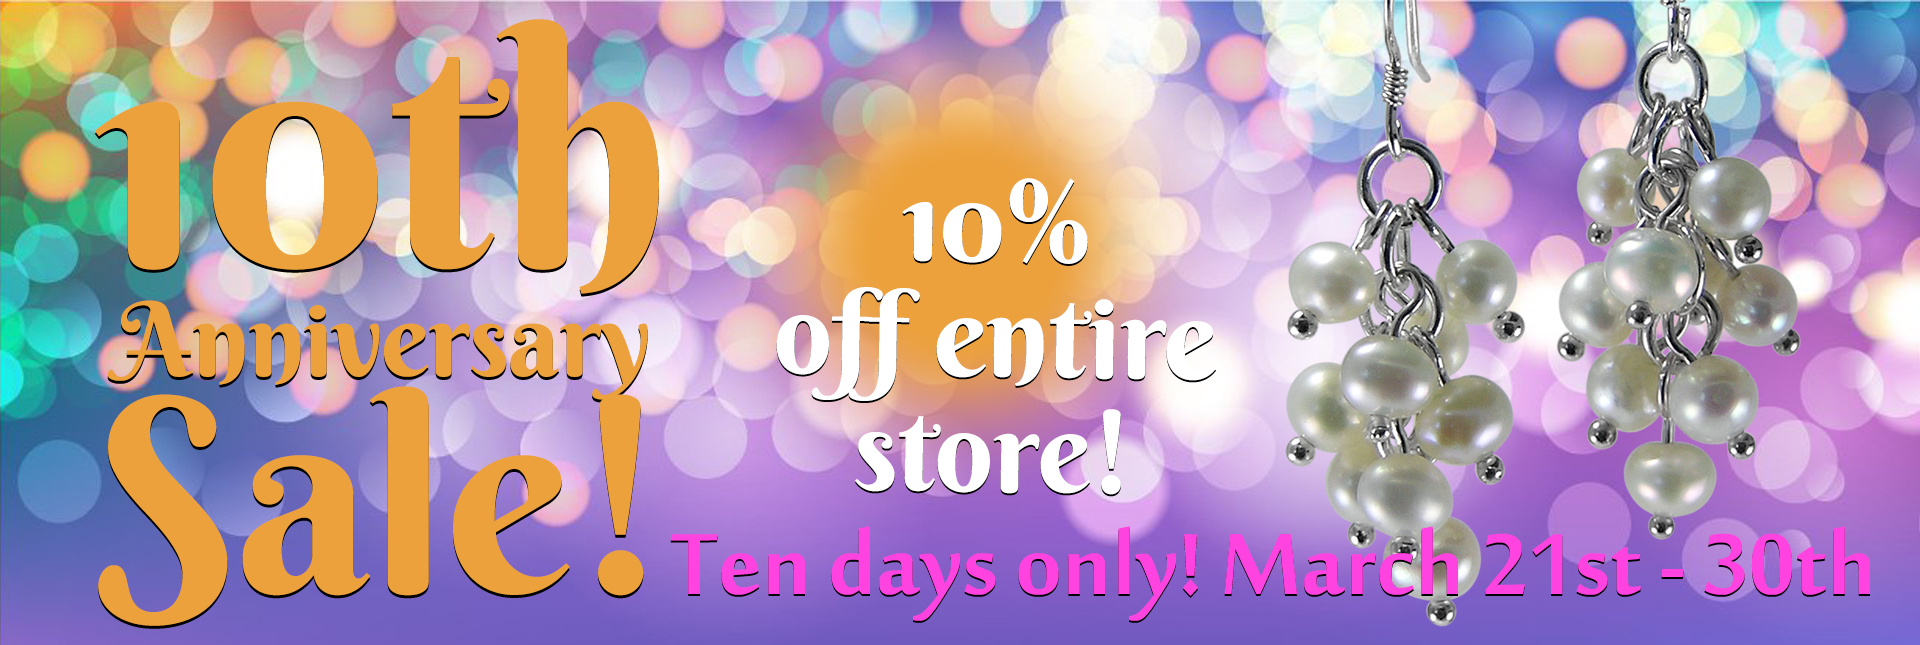 10th Anniversary Sale Website Slider Revised